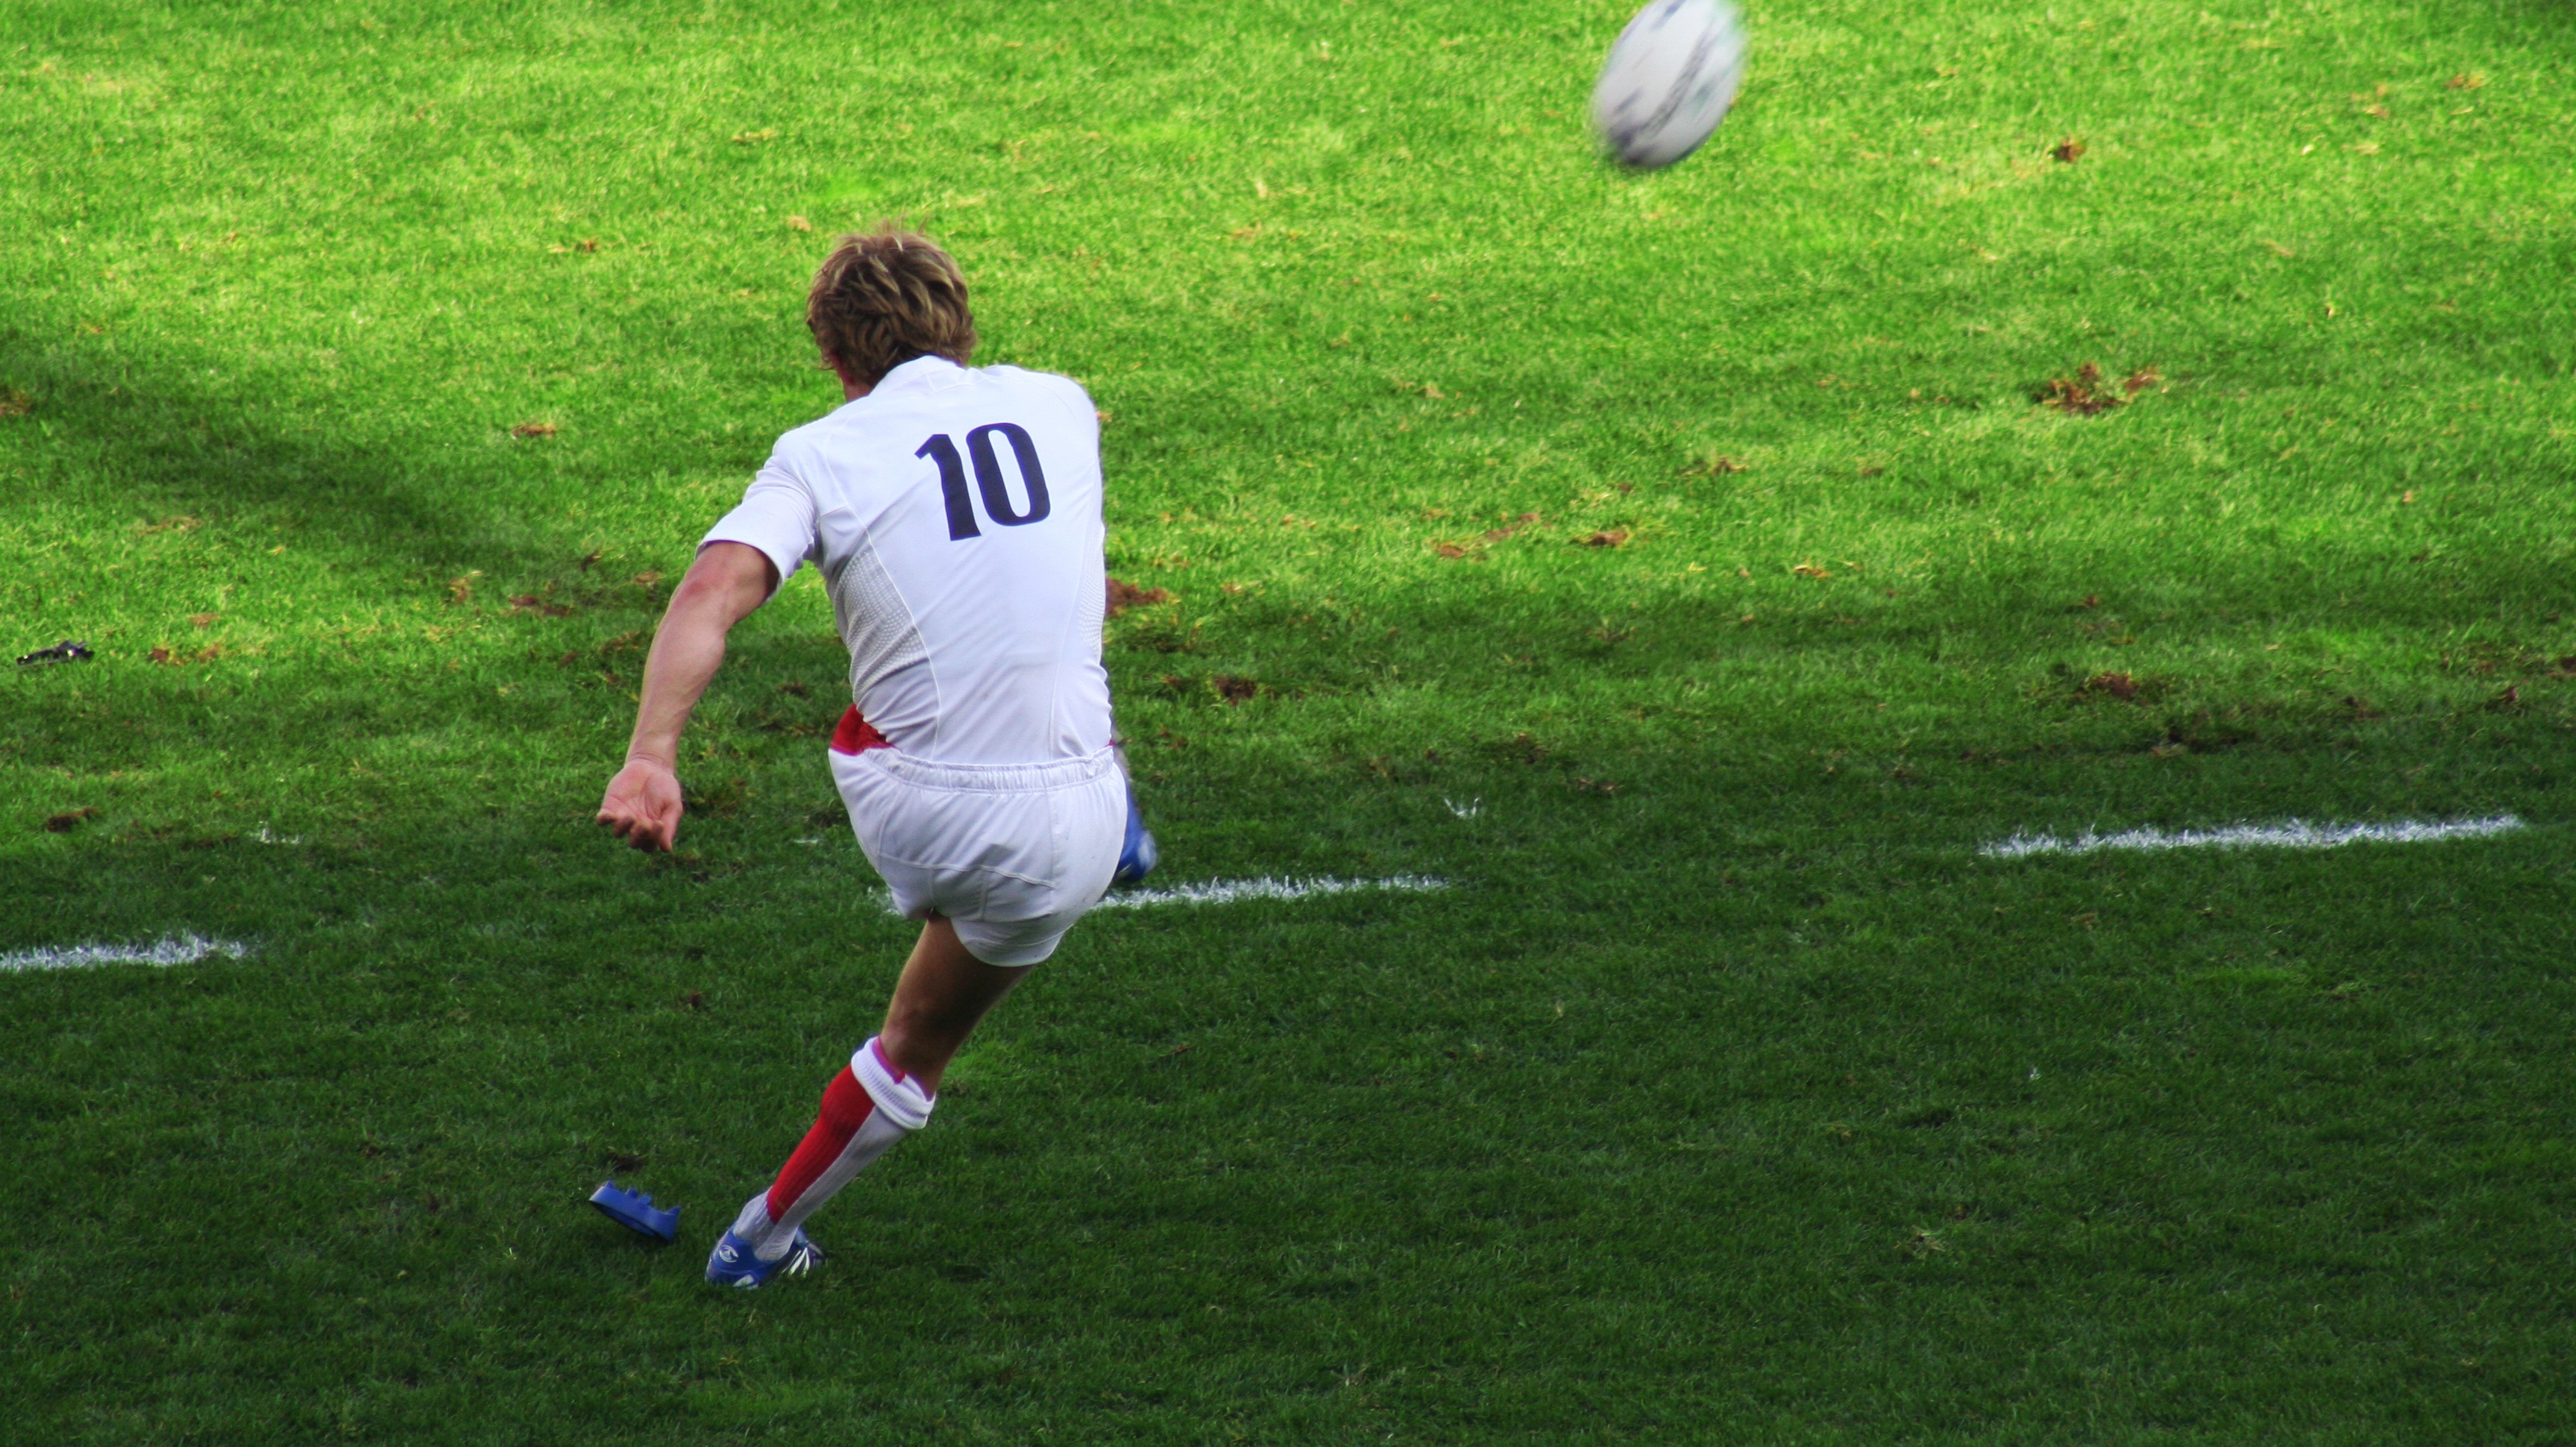 Rugby Kick